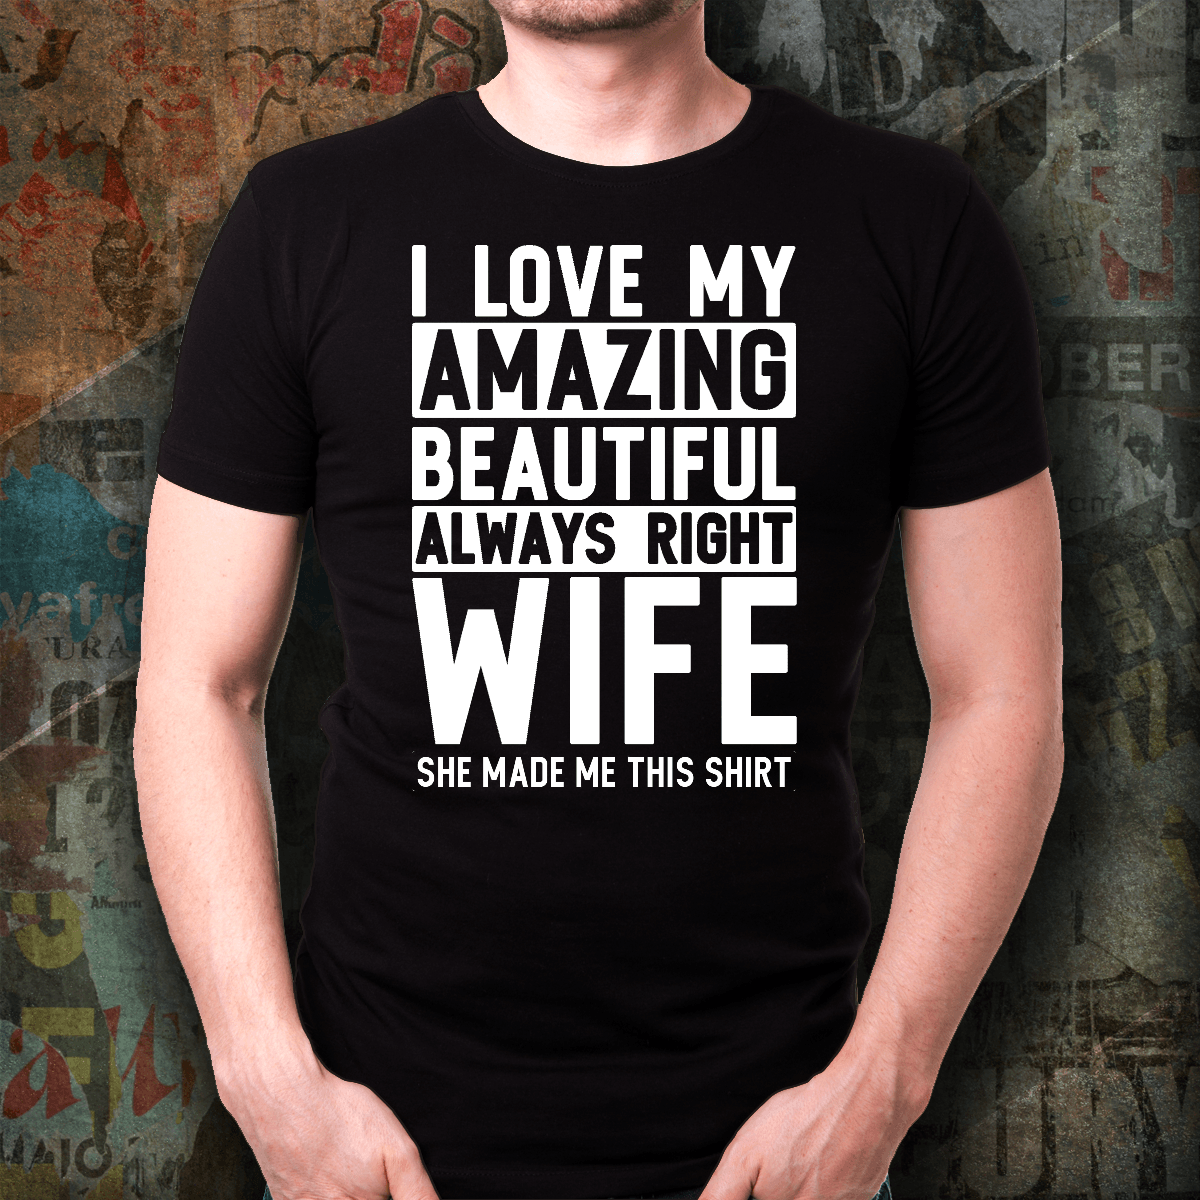 """I Love My Wife"" Cotton Unisex T-Shirt - S&G Collections"